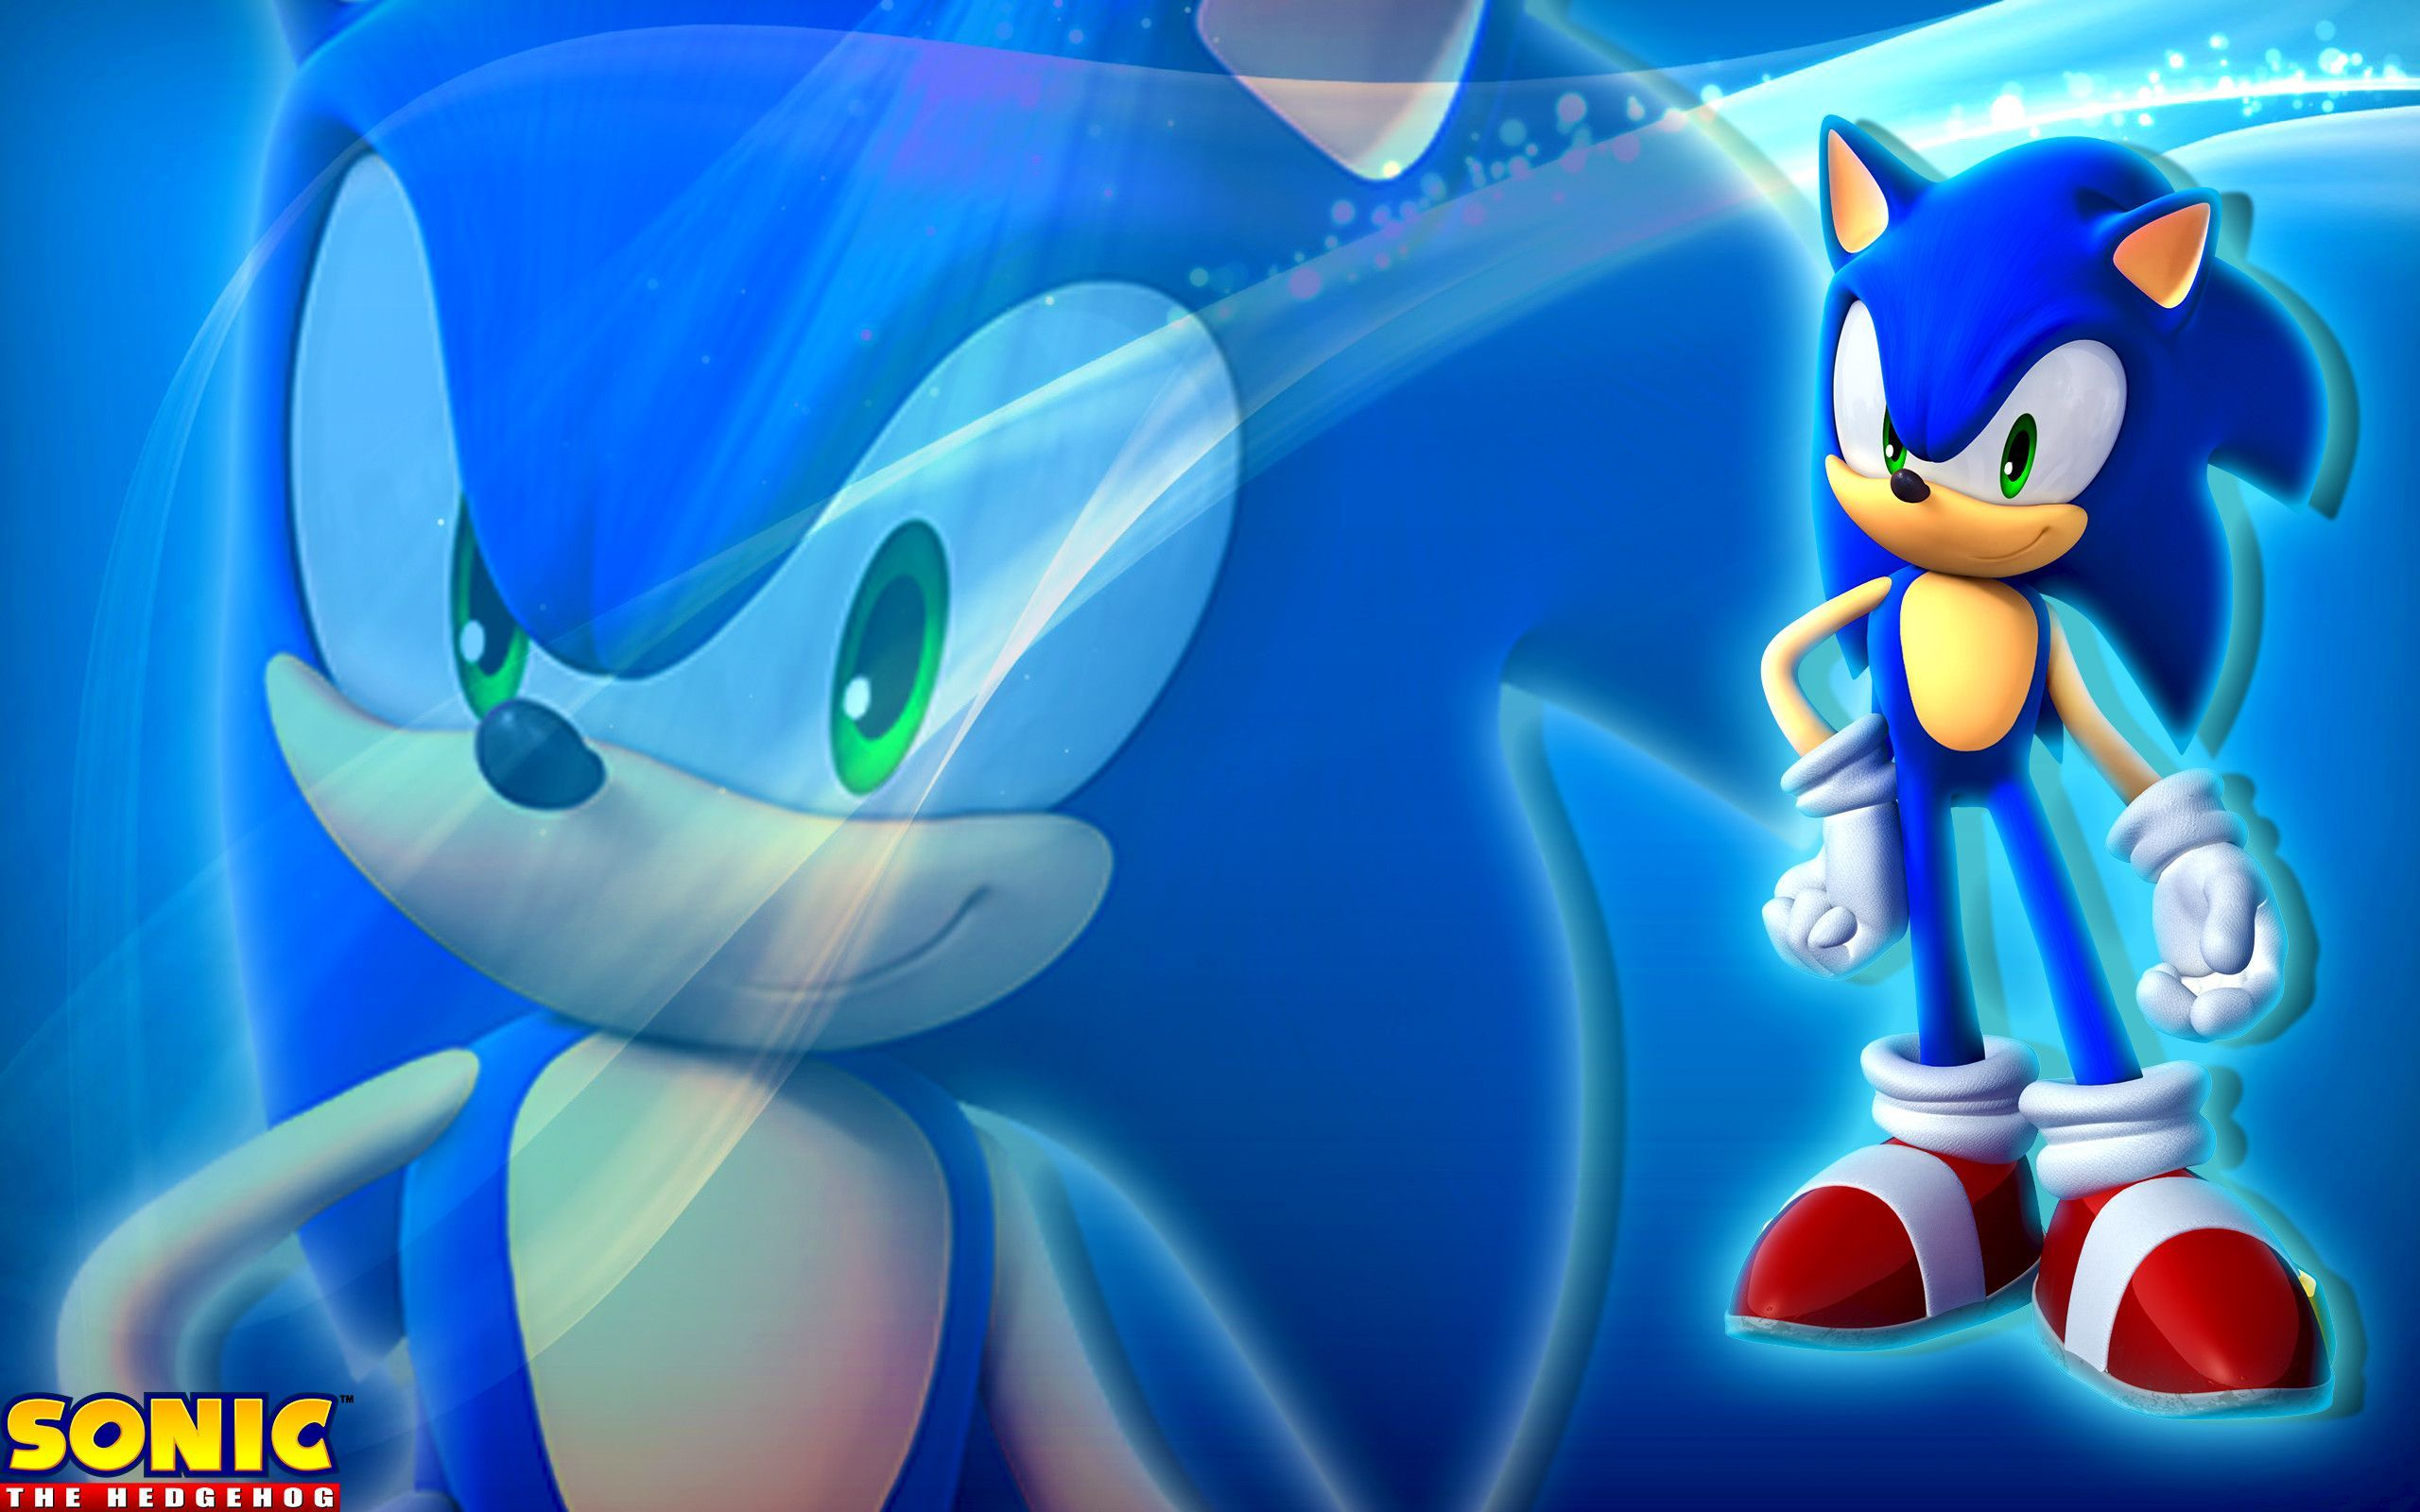 Sonic The Hedgehog Wallpaper Hd Background Wallpaper Sonic